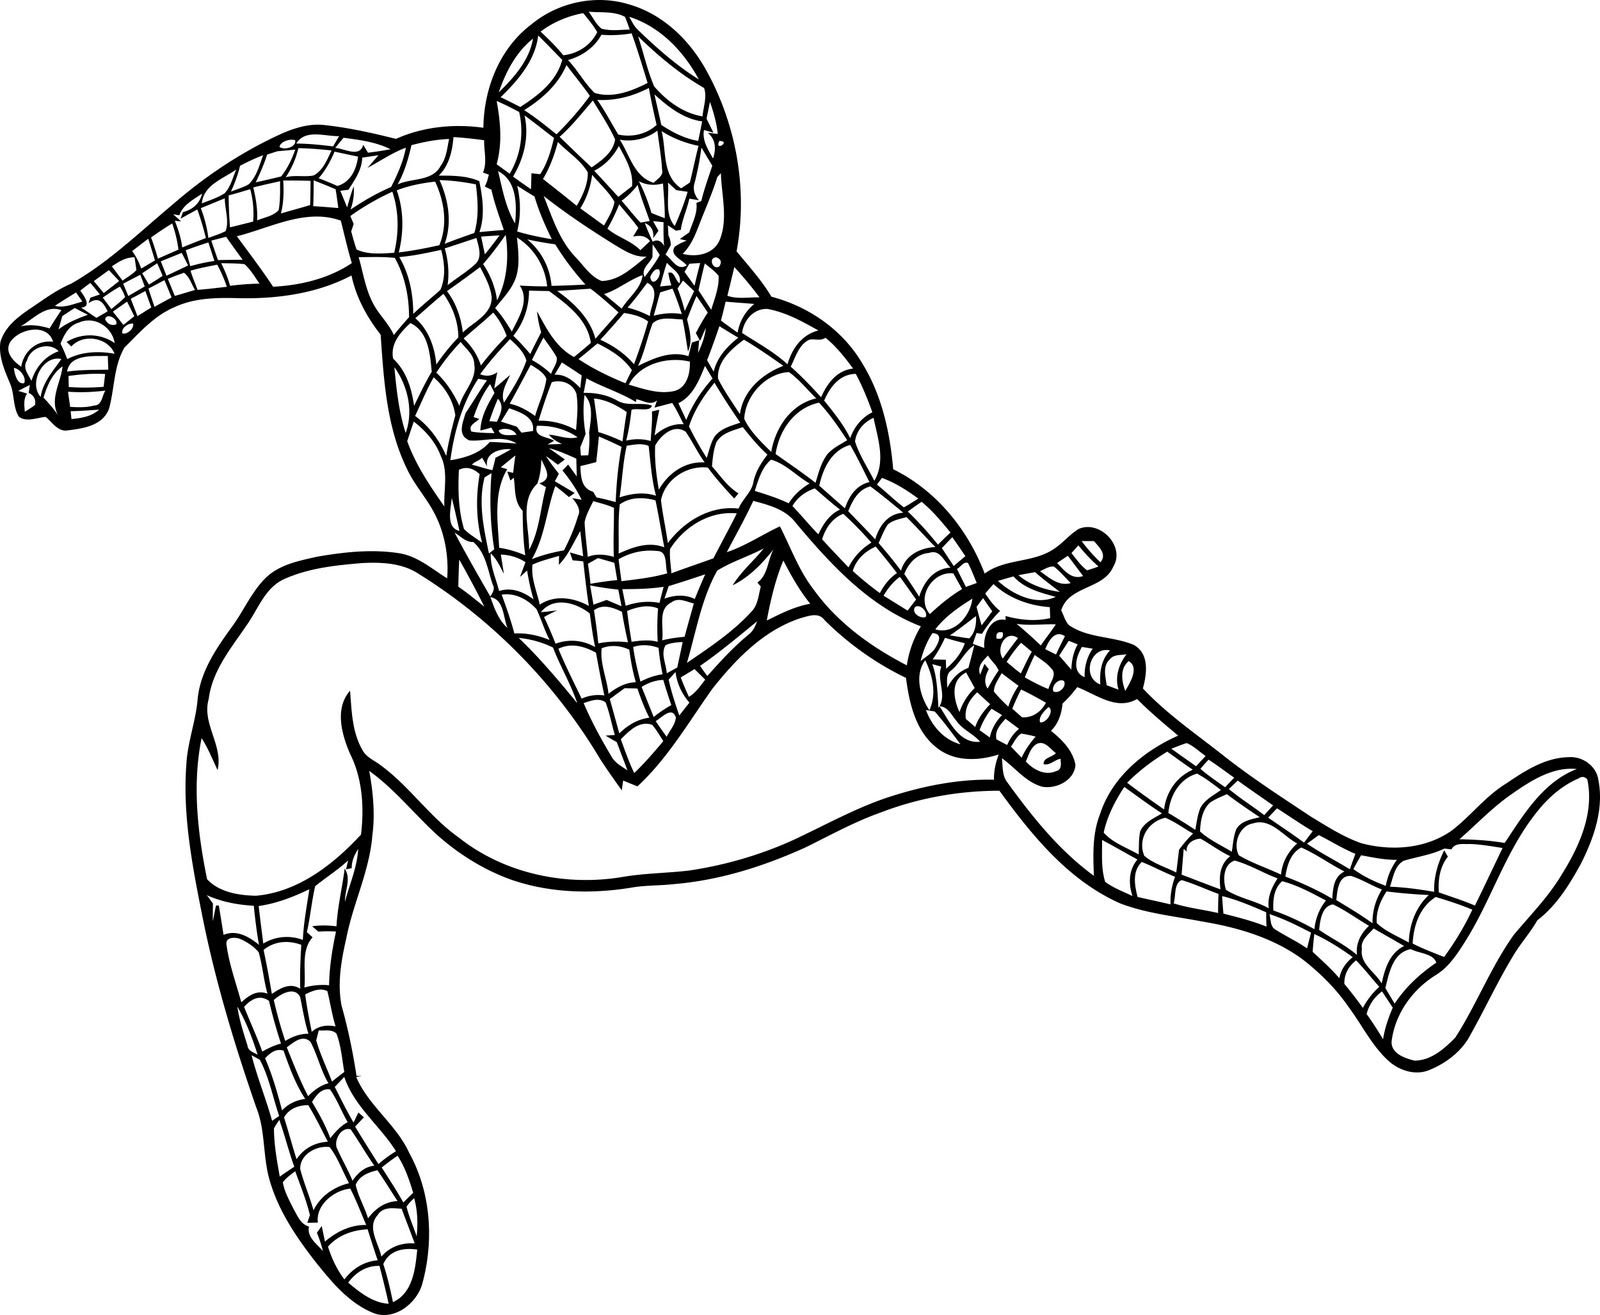 spiderman coloring pages printables print download spiderman coloring pages an enjoyable pages coloring printables spiderman